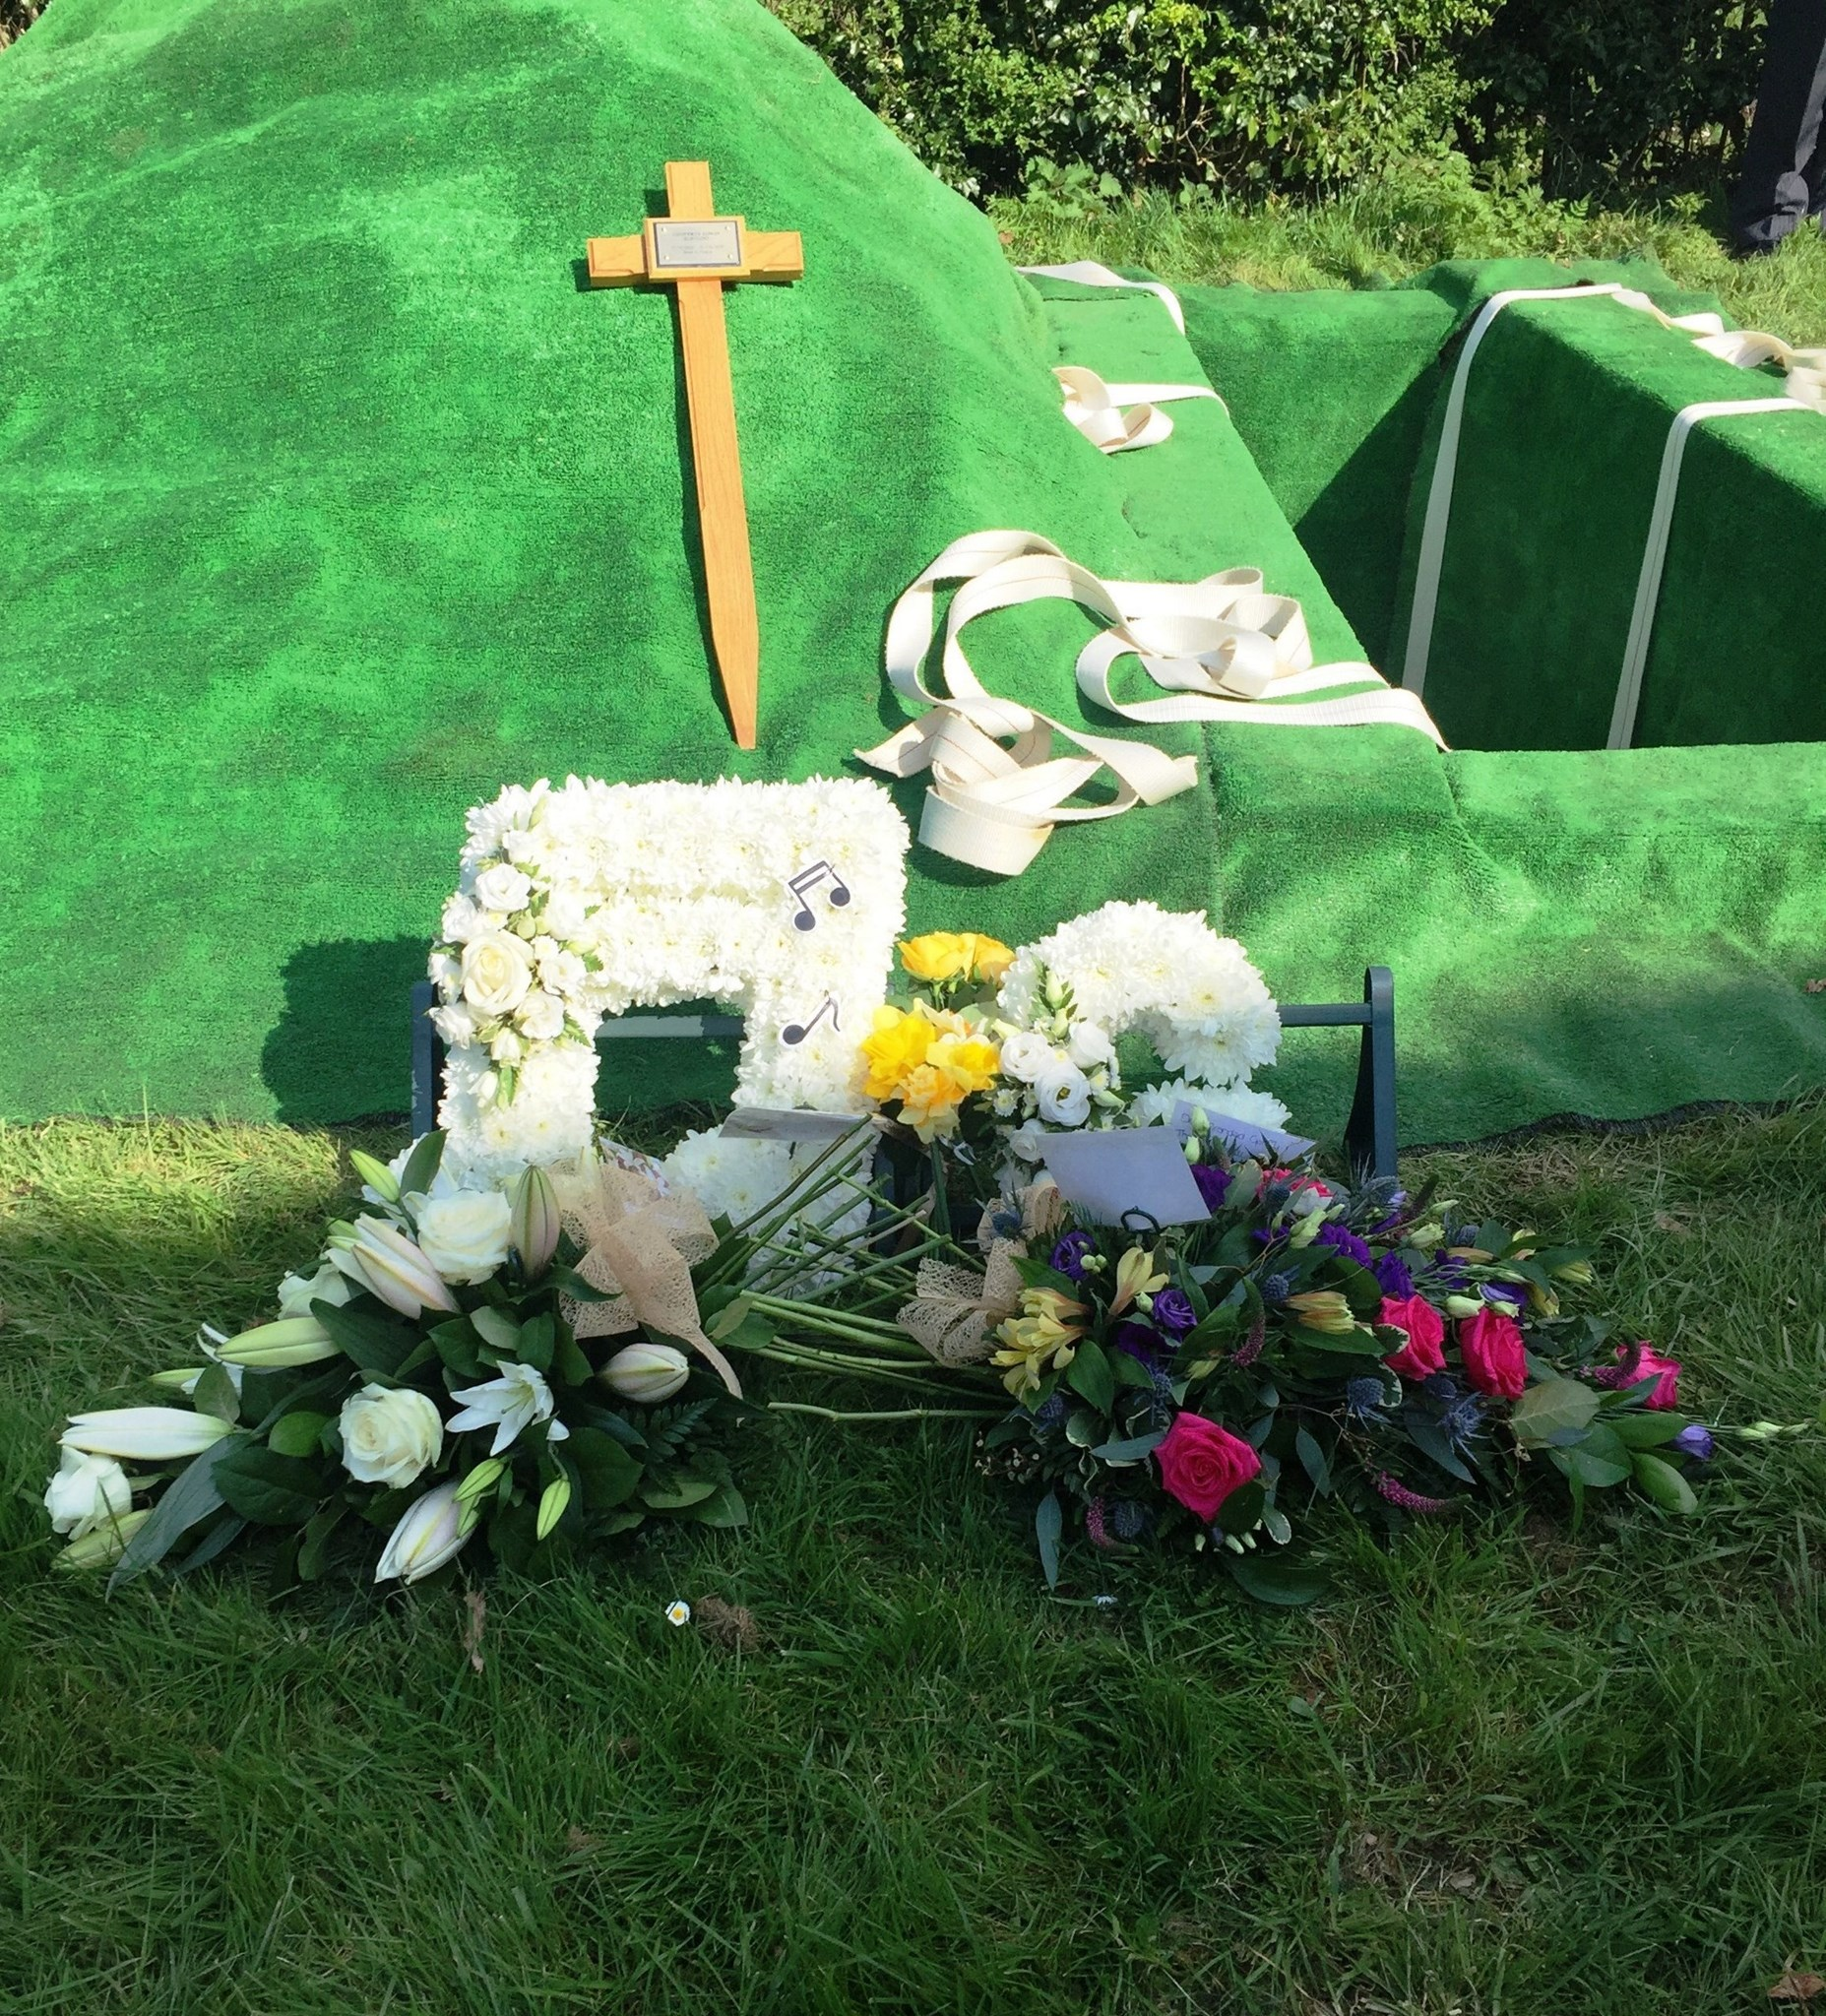 Floral tributes for Geoffrey Slingsby